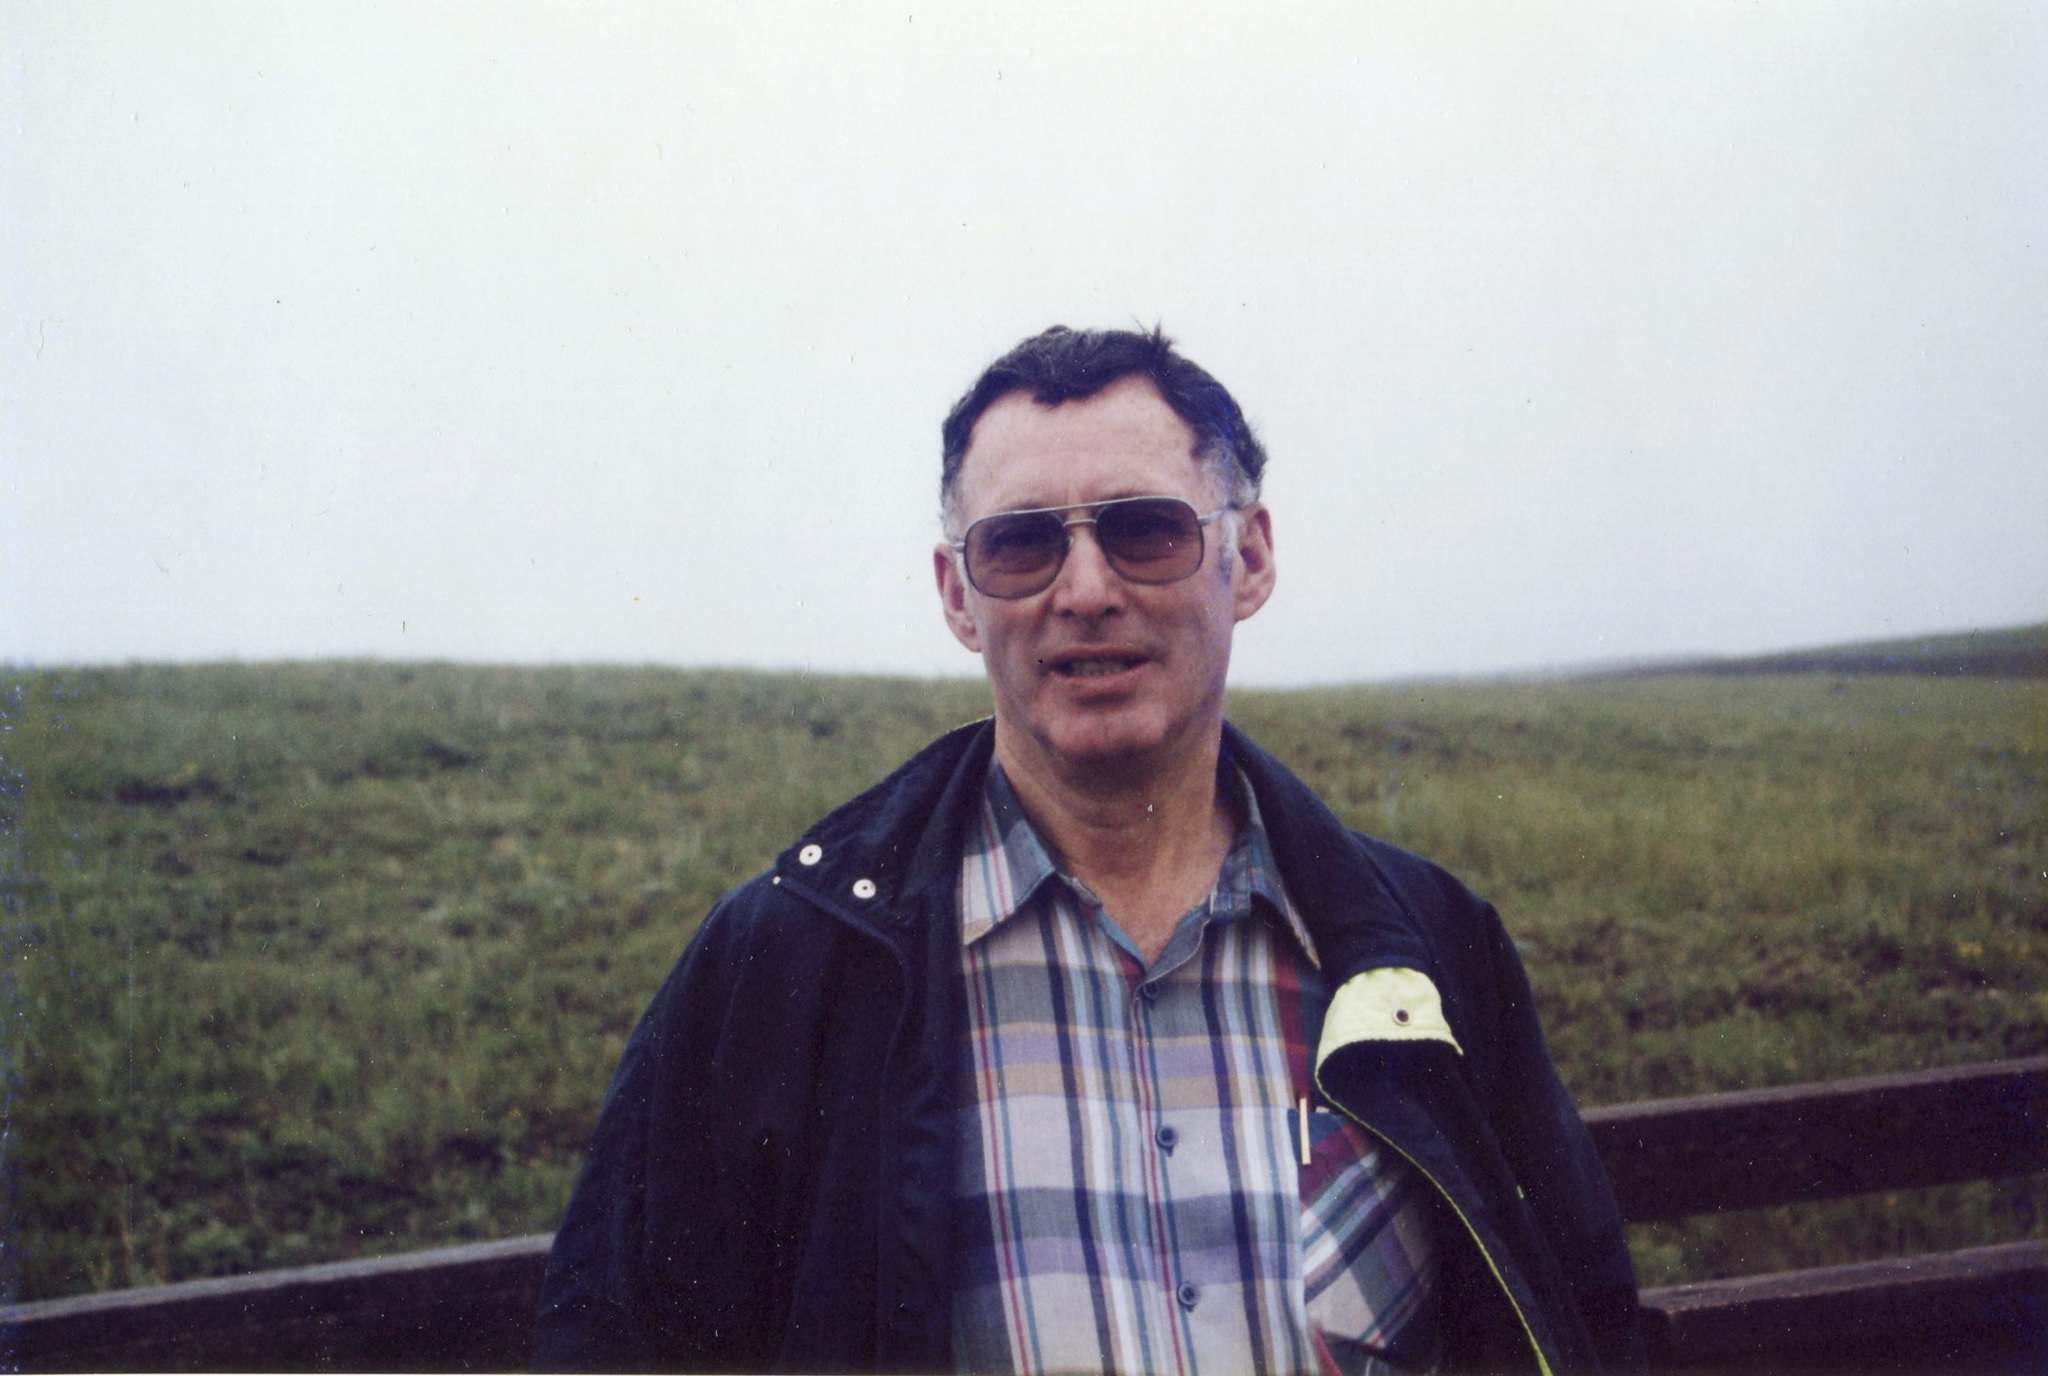 Leonard left full-time farming in 1993 and moved to Wawota, Sask. to become a minister's spouse supporting Mary's career in ministry. (Supplied)</p>